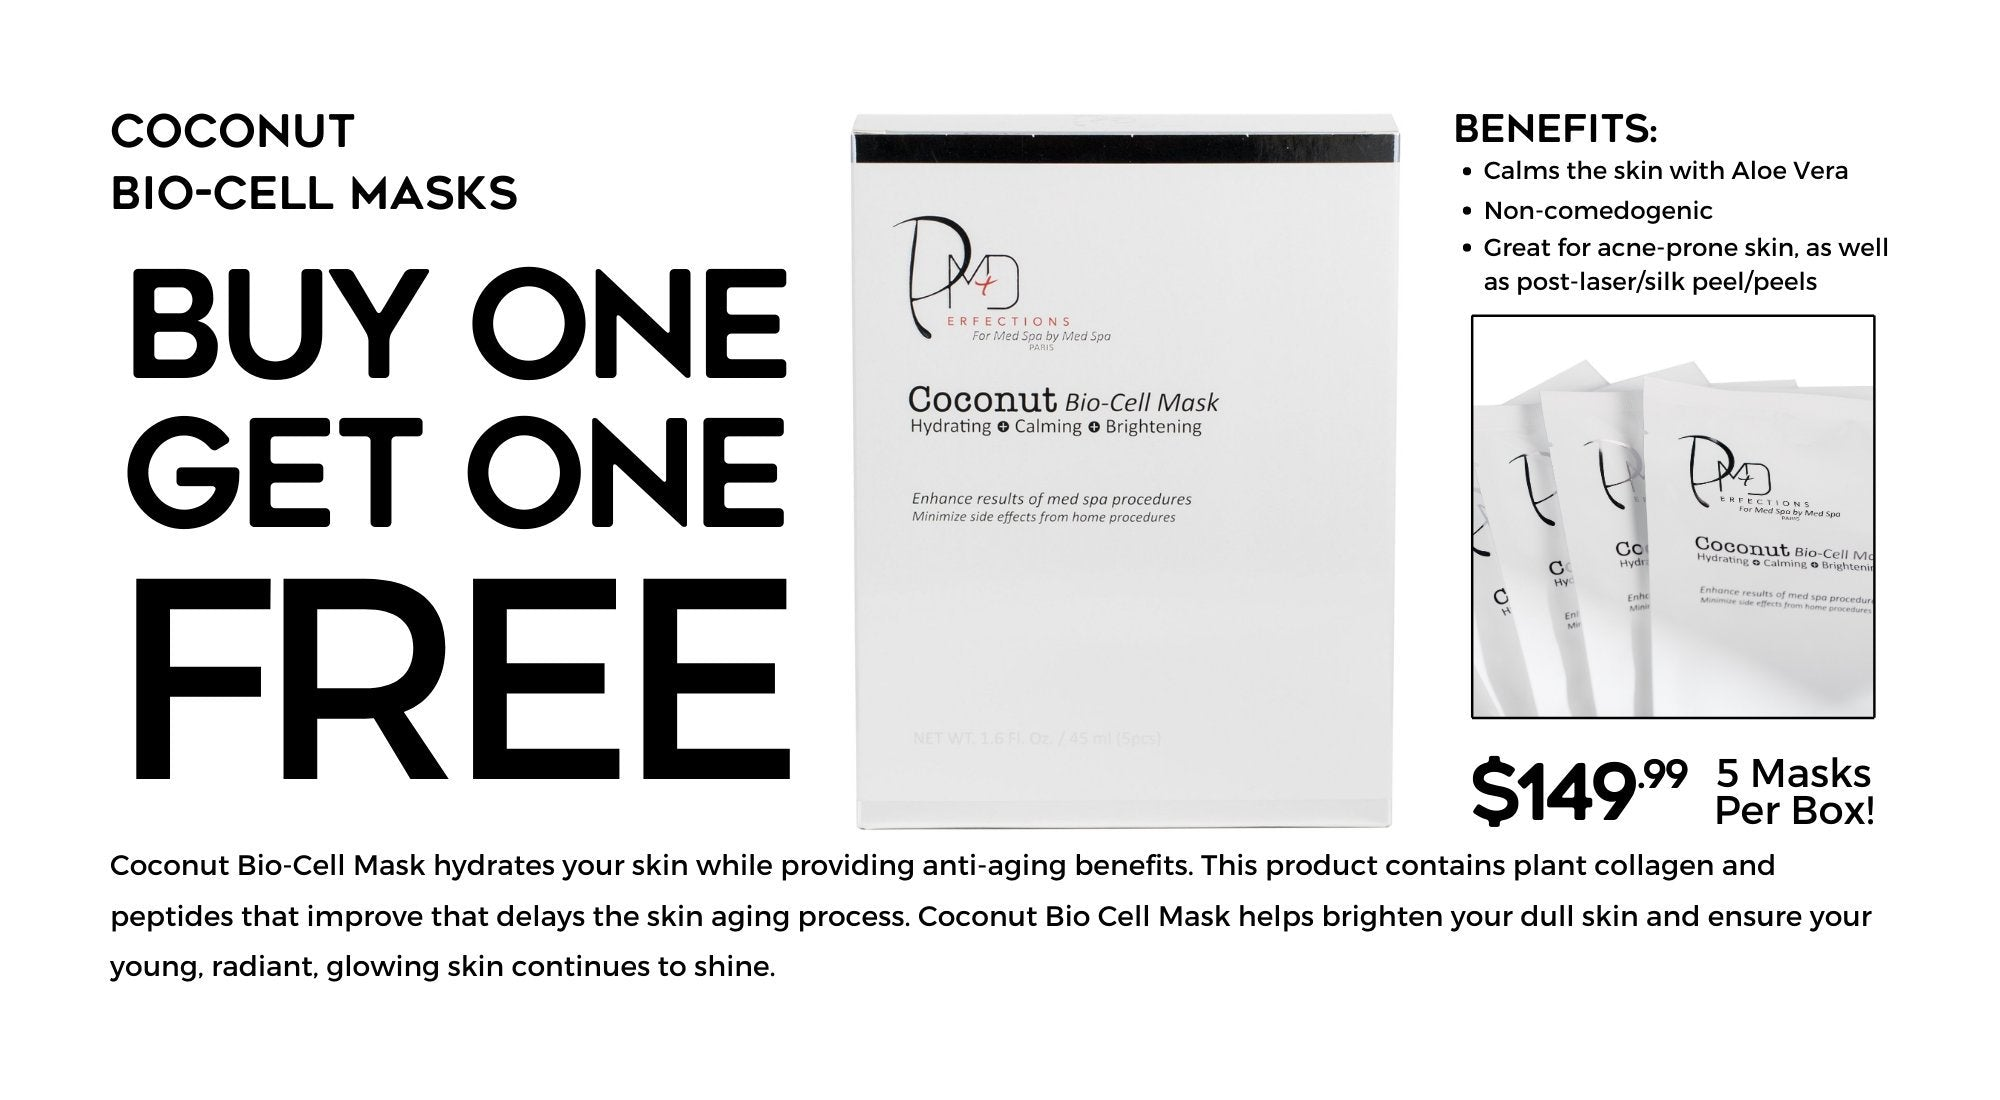 https://store.skinperfectbrothers.com/products/meso-botox